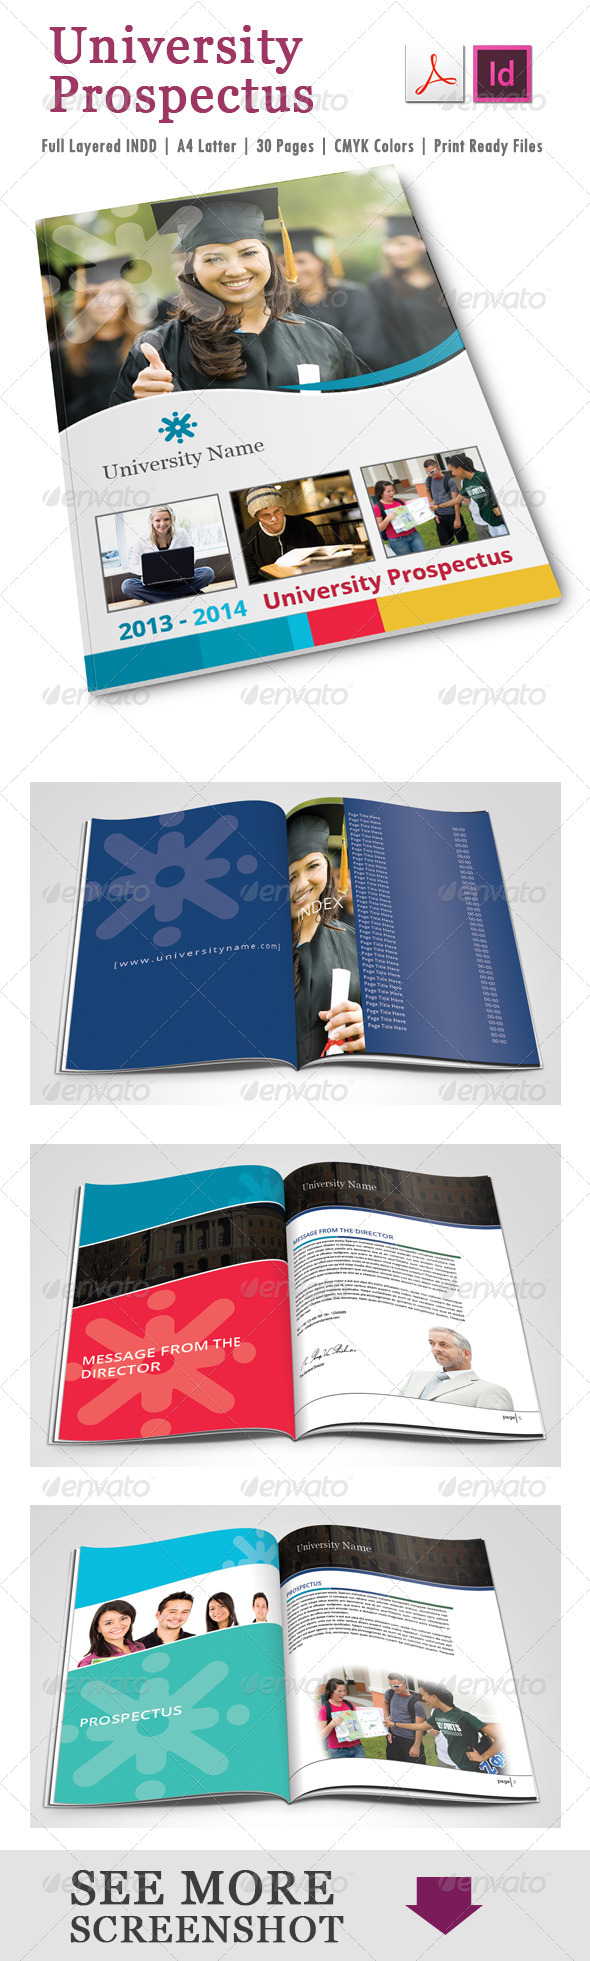 GraphicRiver University Prospectus Template 4838503